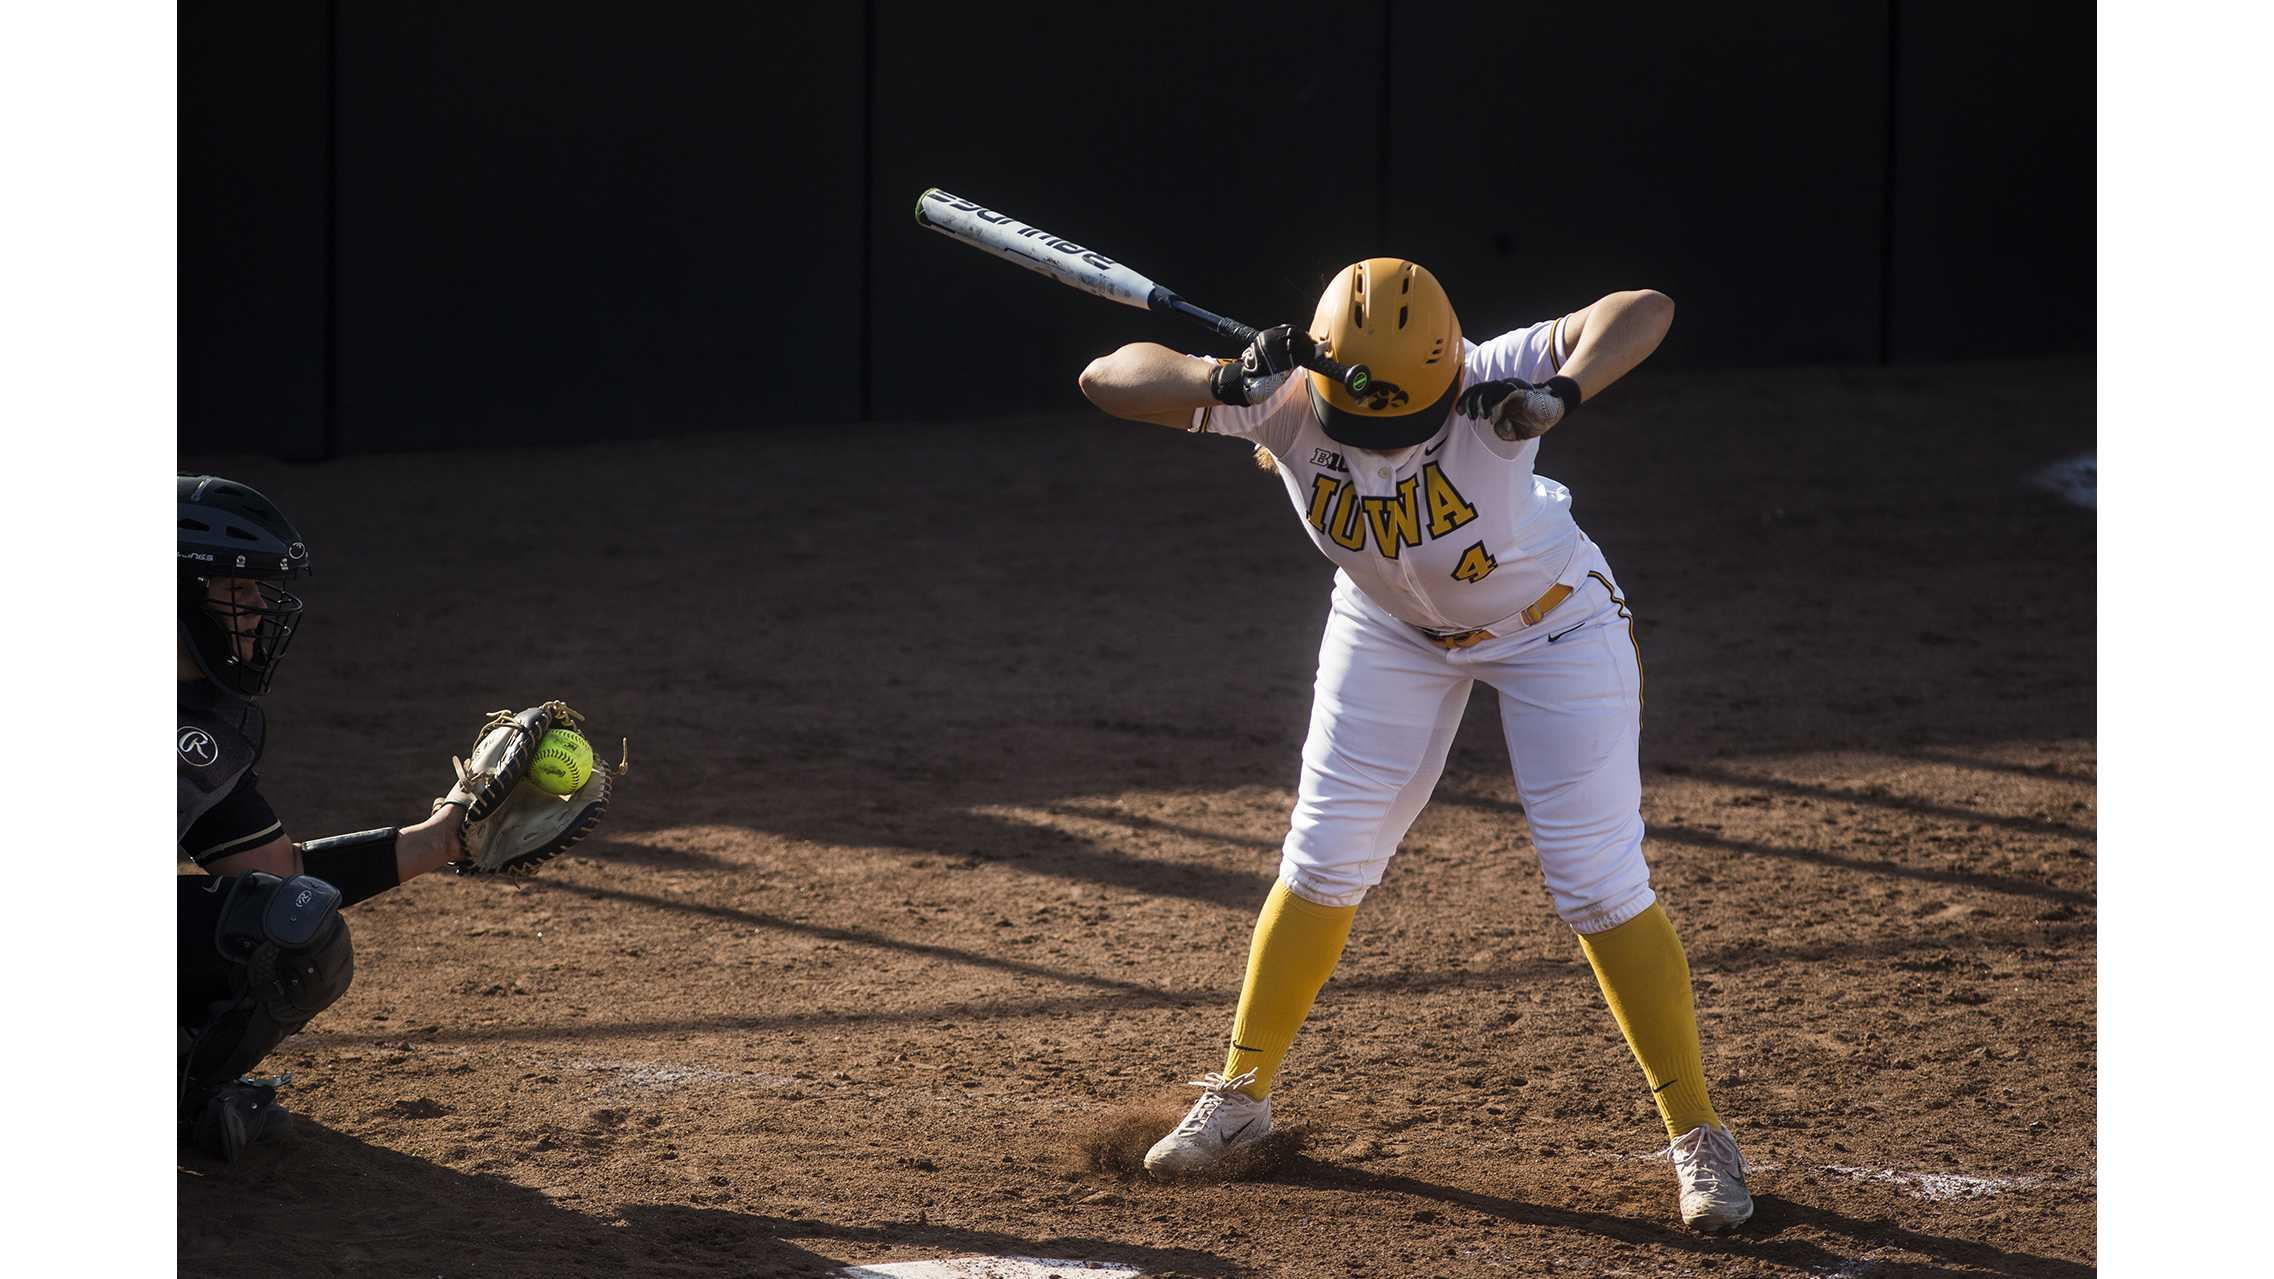 Iowa's Taylor Libby dodges a pitch on the inside during the NCAA women's softball game between Iowa and Purdue at Bob Pearl Softball Field on Friday, May 4, 2018. The Hawkeyes lost to the Boilermakers 1-3. (Ben Allan Smith/The Daily Iowan)